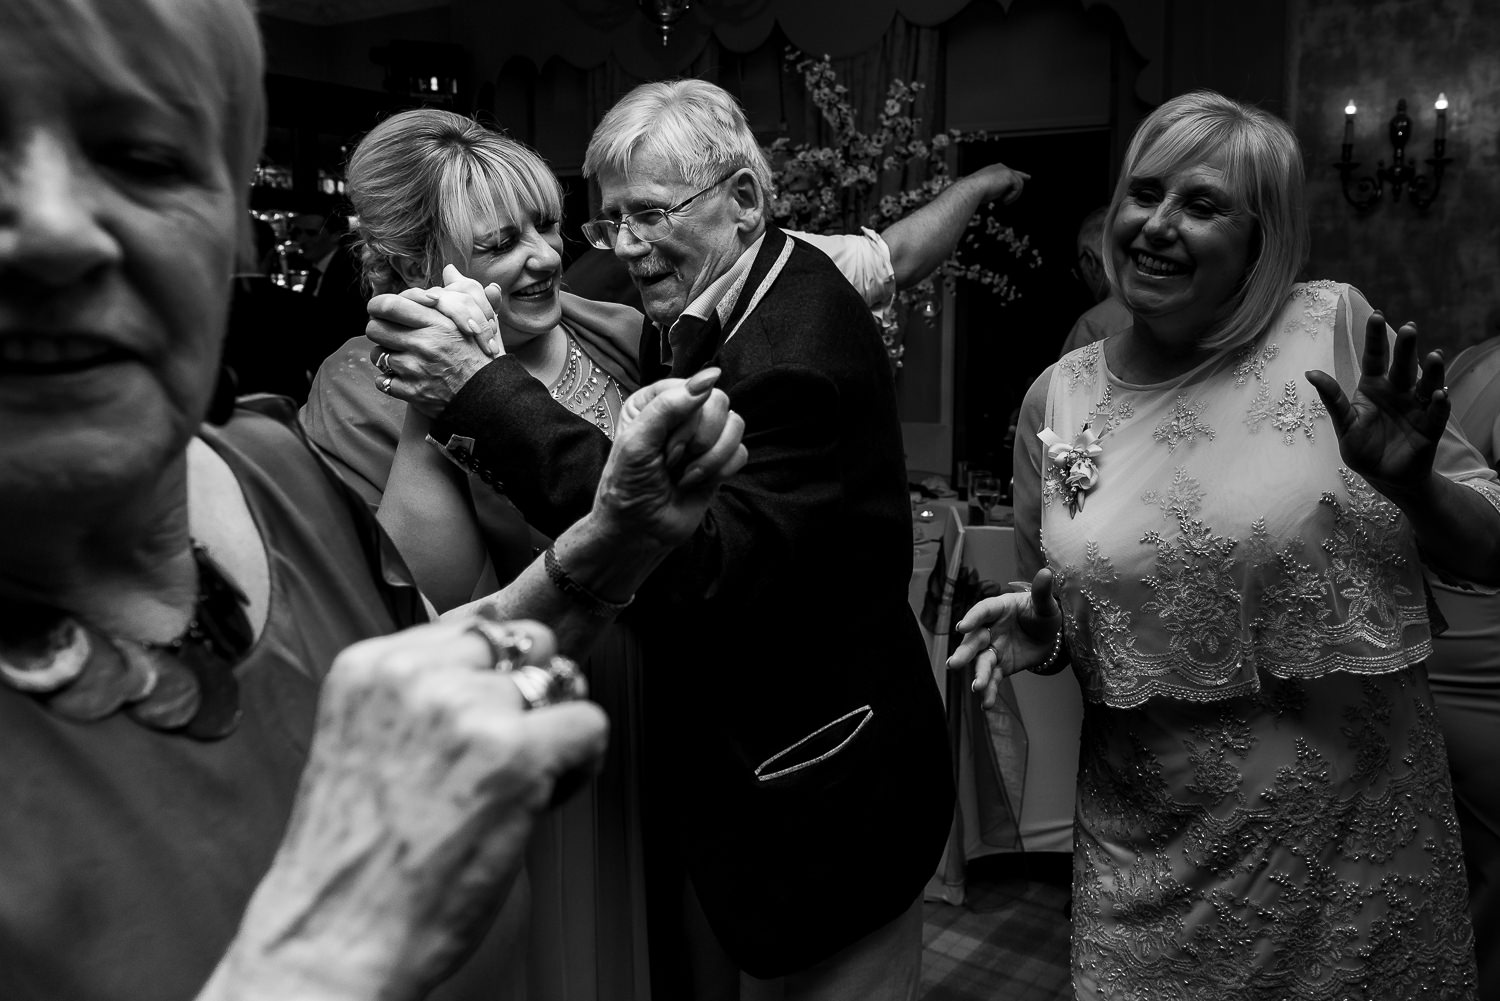 Granddad and granddaughter dancing